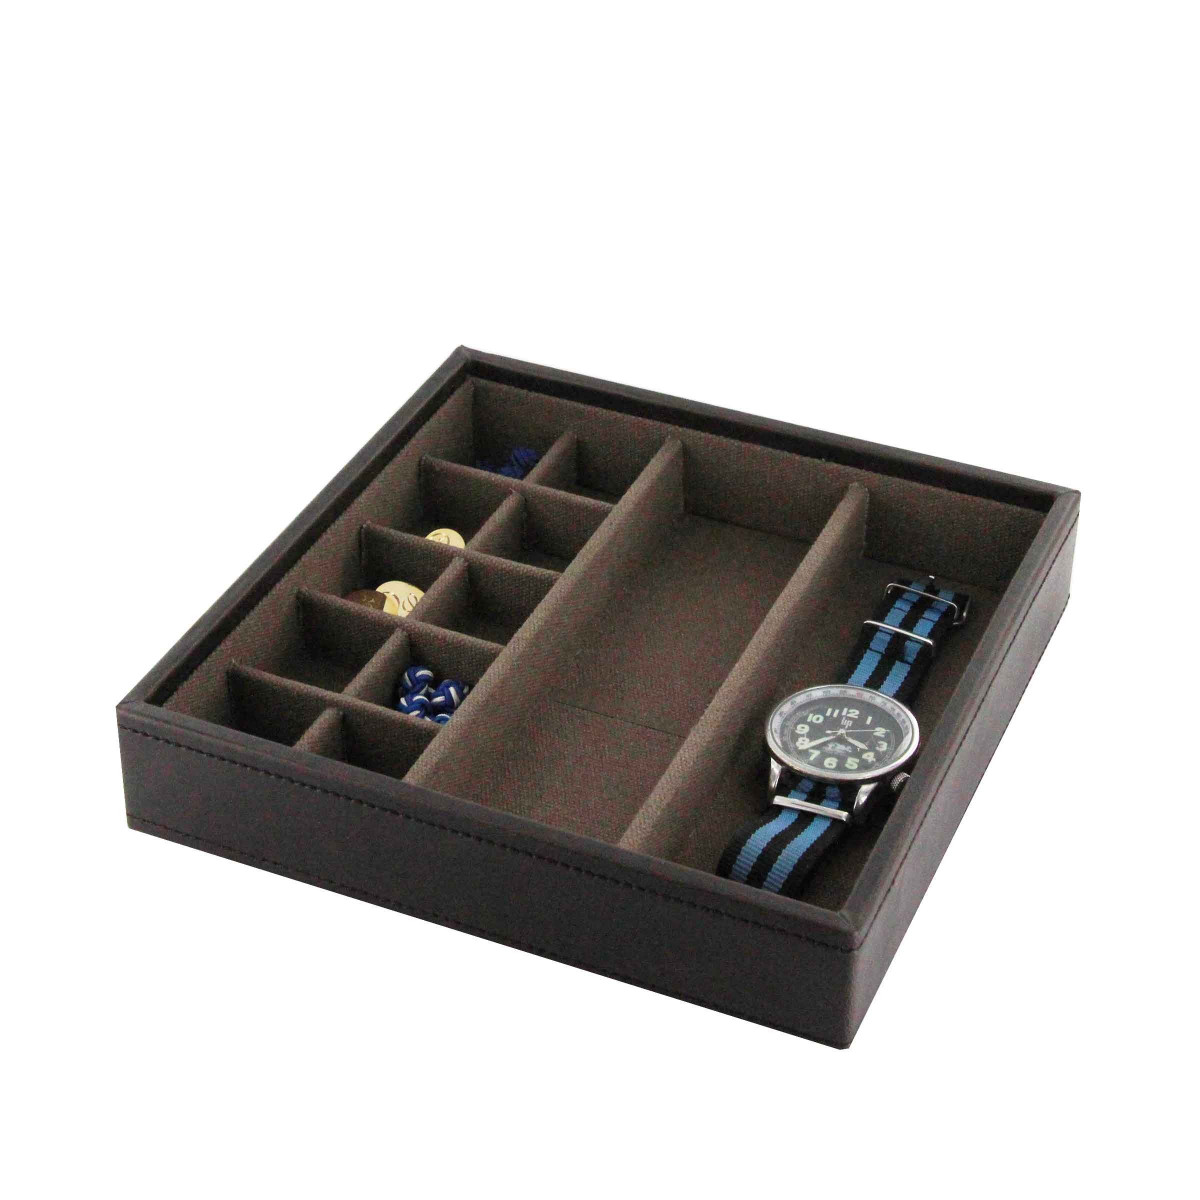 rangement boutons de manchette et montres plateau. Black Bedroom Furniture Sets. Home Design Ideas